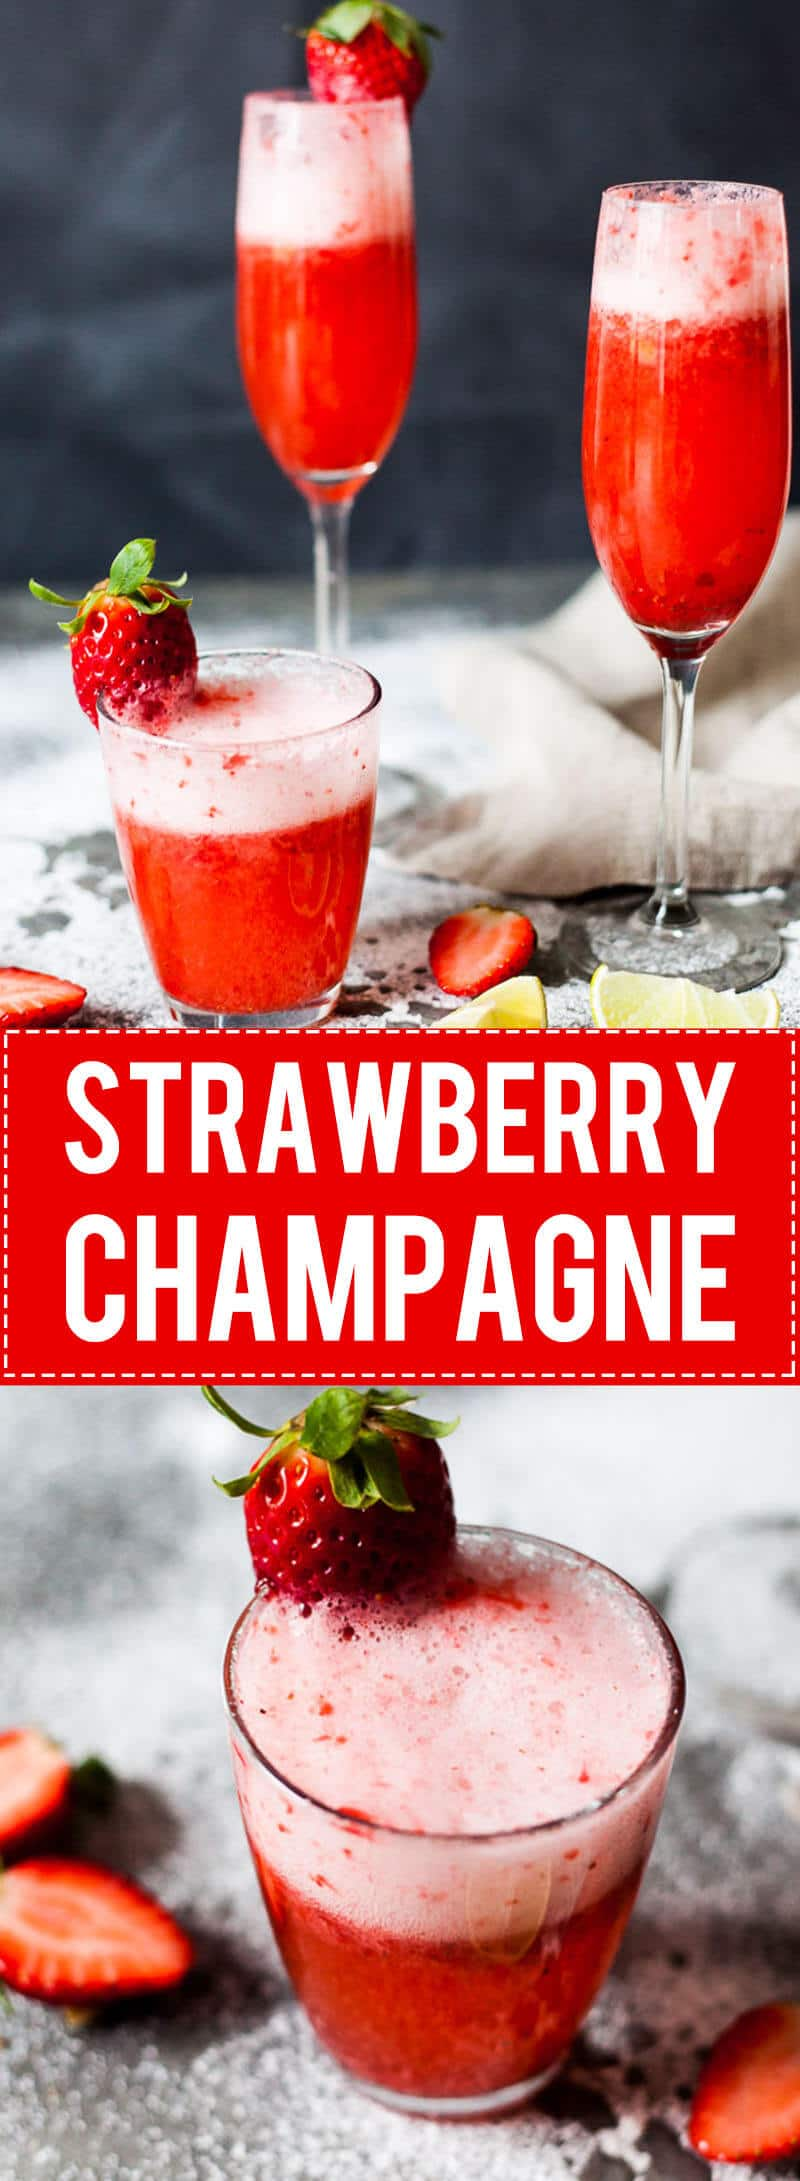 Celebrate Valentine's with this easy & delicious Strawberry Champagne! Mix champagne with strawberry puree for a delightful drink.